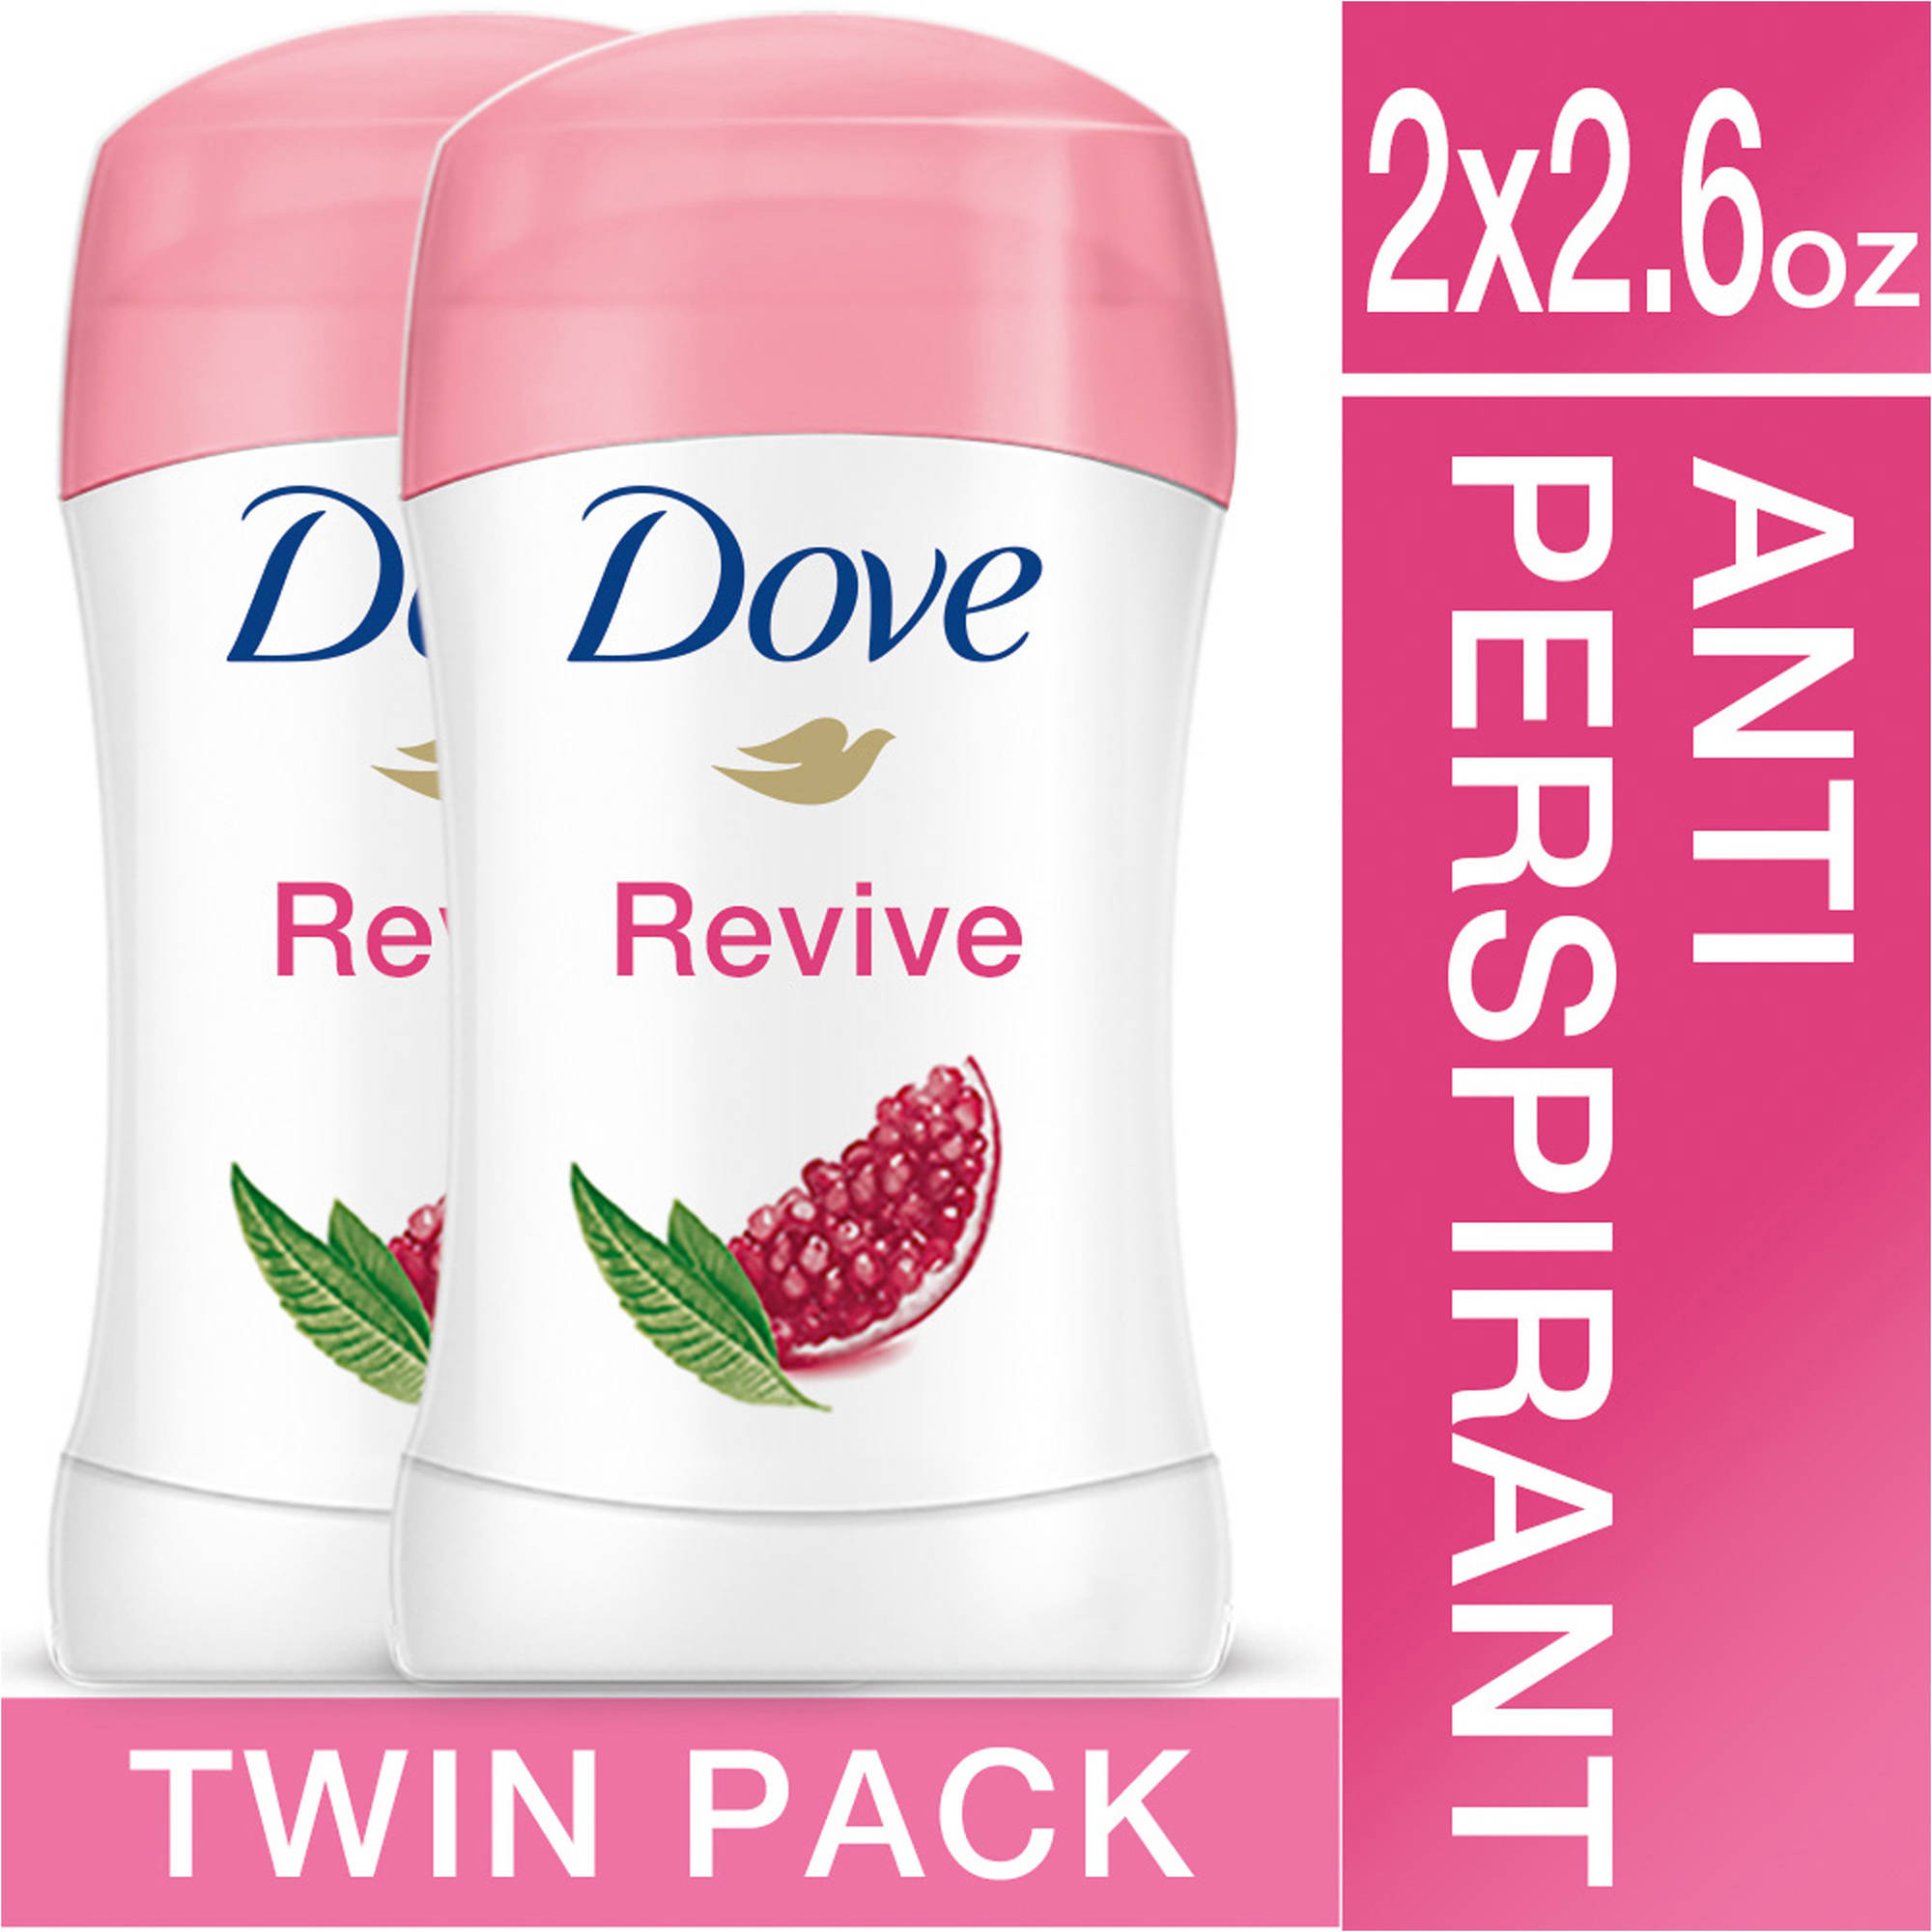 Dove go fresh Revive Antiperspirant Deodorant, 2.6 oz, Twin Pack